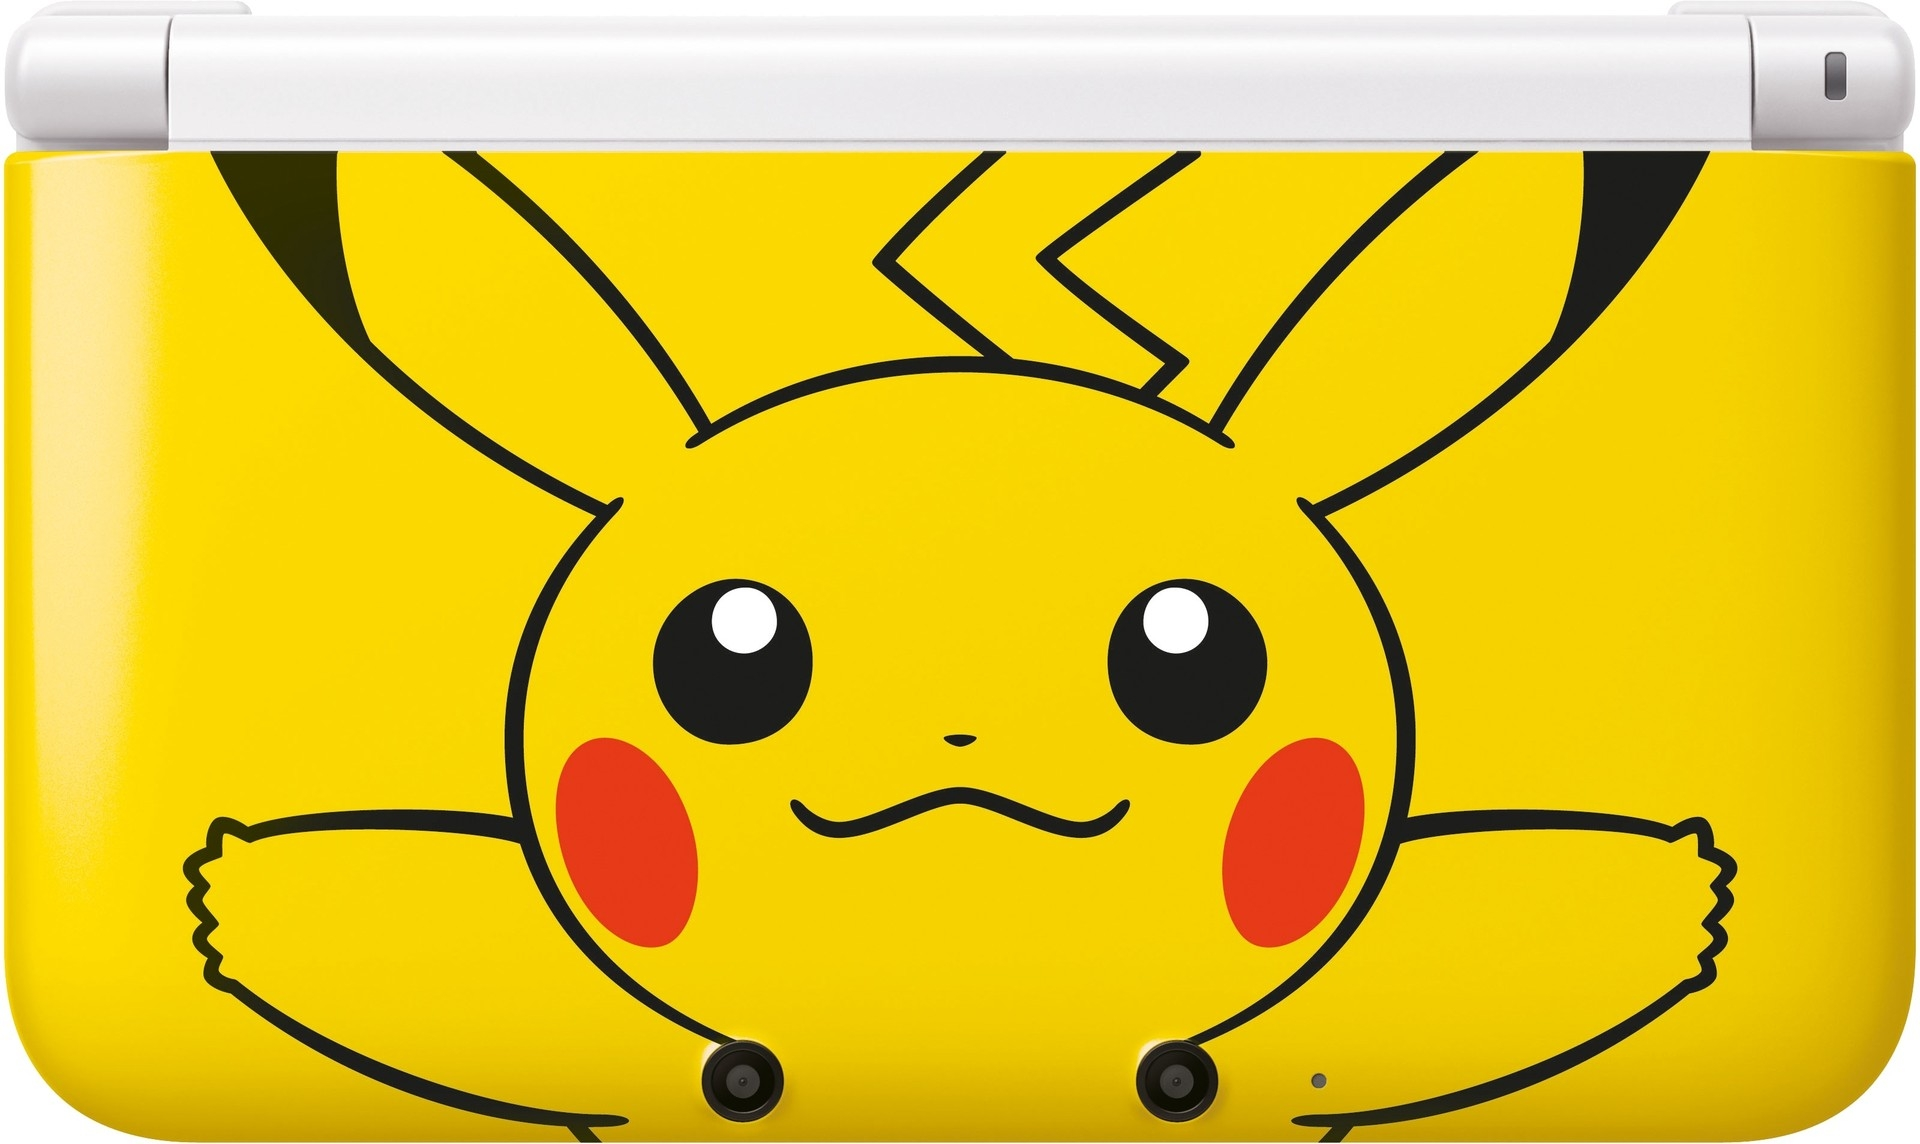 Pikachu Nintendo 3DS XL Coming To North America March 24th